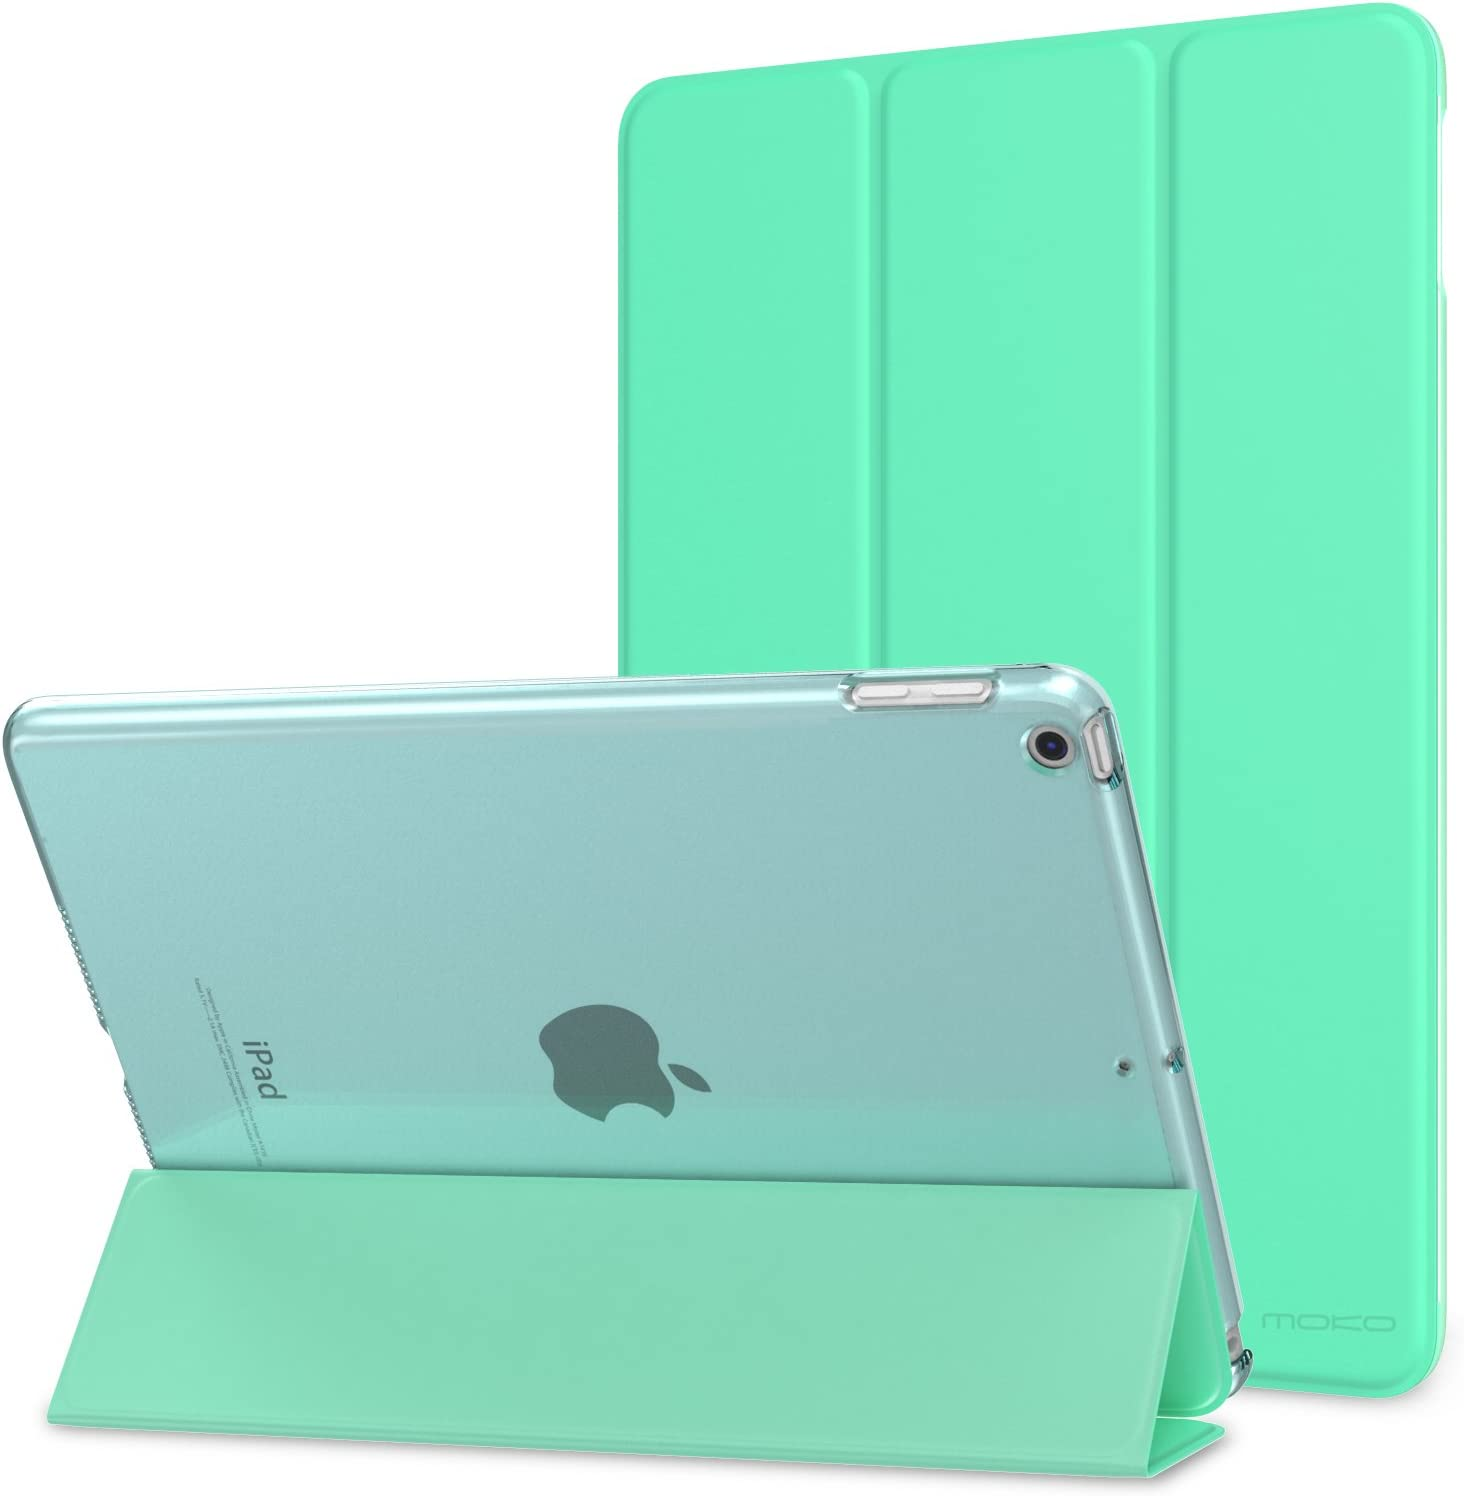 MoKo Case Fit 2018/2017 iPad 9.7 6th/5th Generation - Slim Lightweight Smart Shell Stand Cover with Translucent Frosted Back Protector Fit iPad 9.7 Inch 2018/2017, Mint Green (Auto Wake/Sleep)